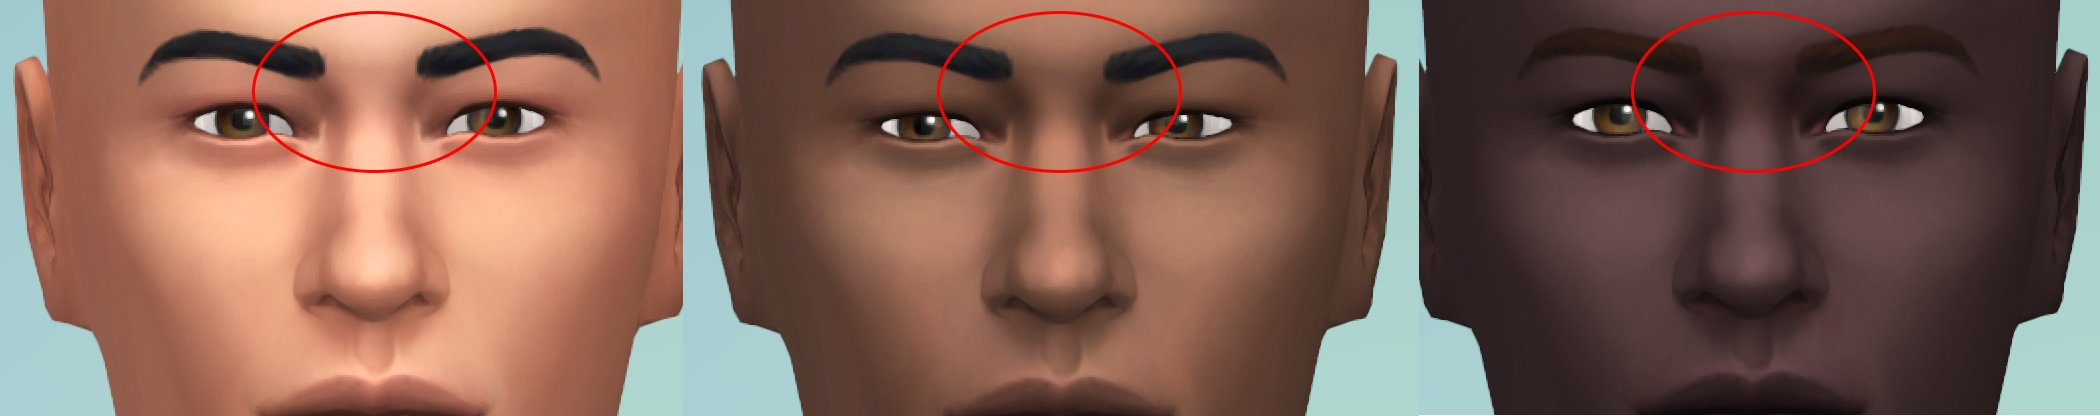 The Sims 4 November 2020 Updates Coming to Fix Skin Blotches